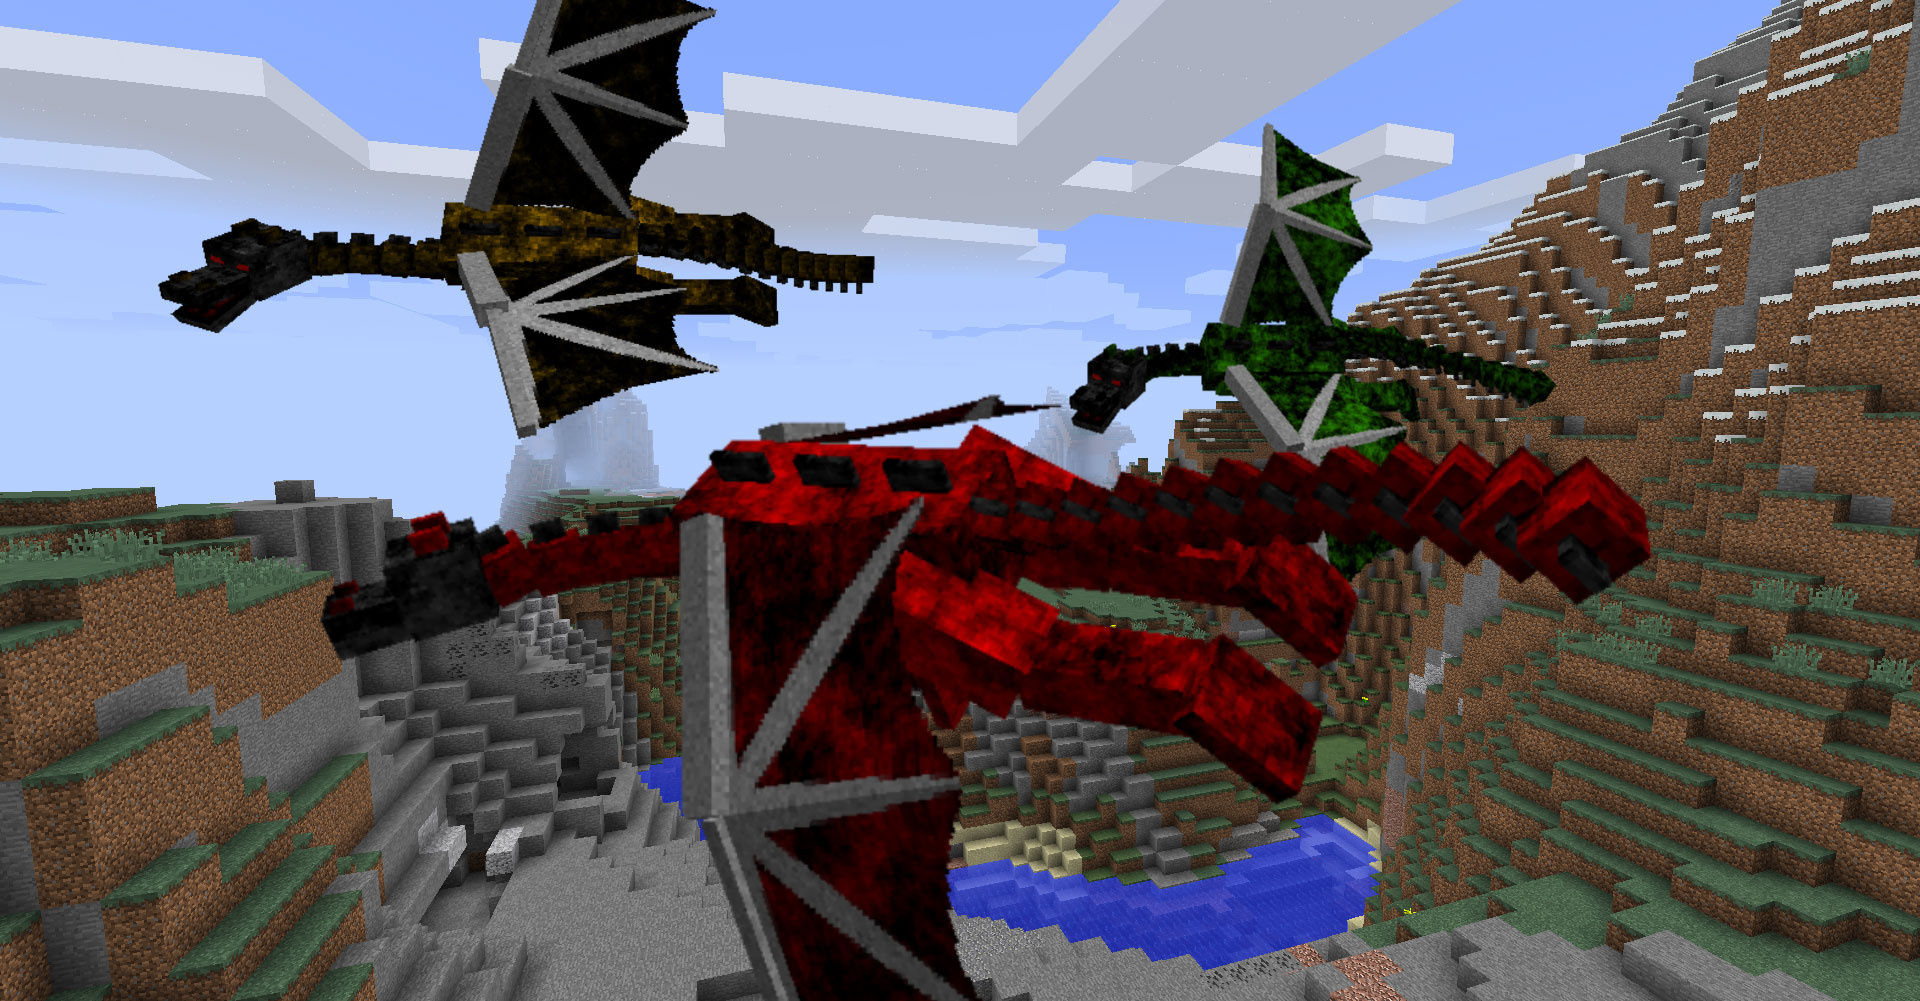 Dragons Feature